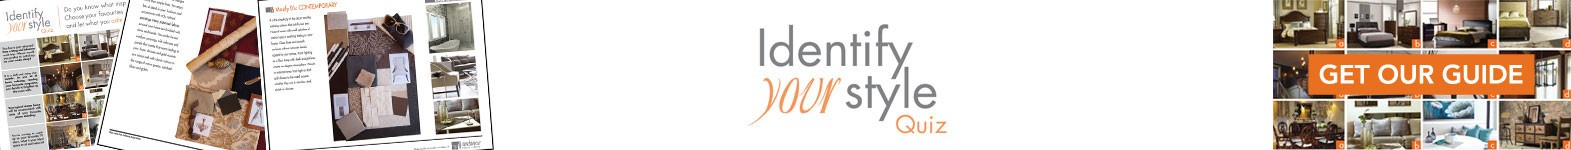 Download Identify Your Style Quiz